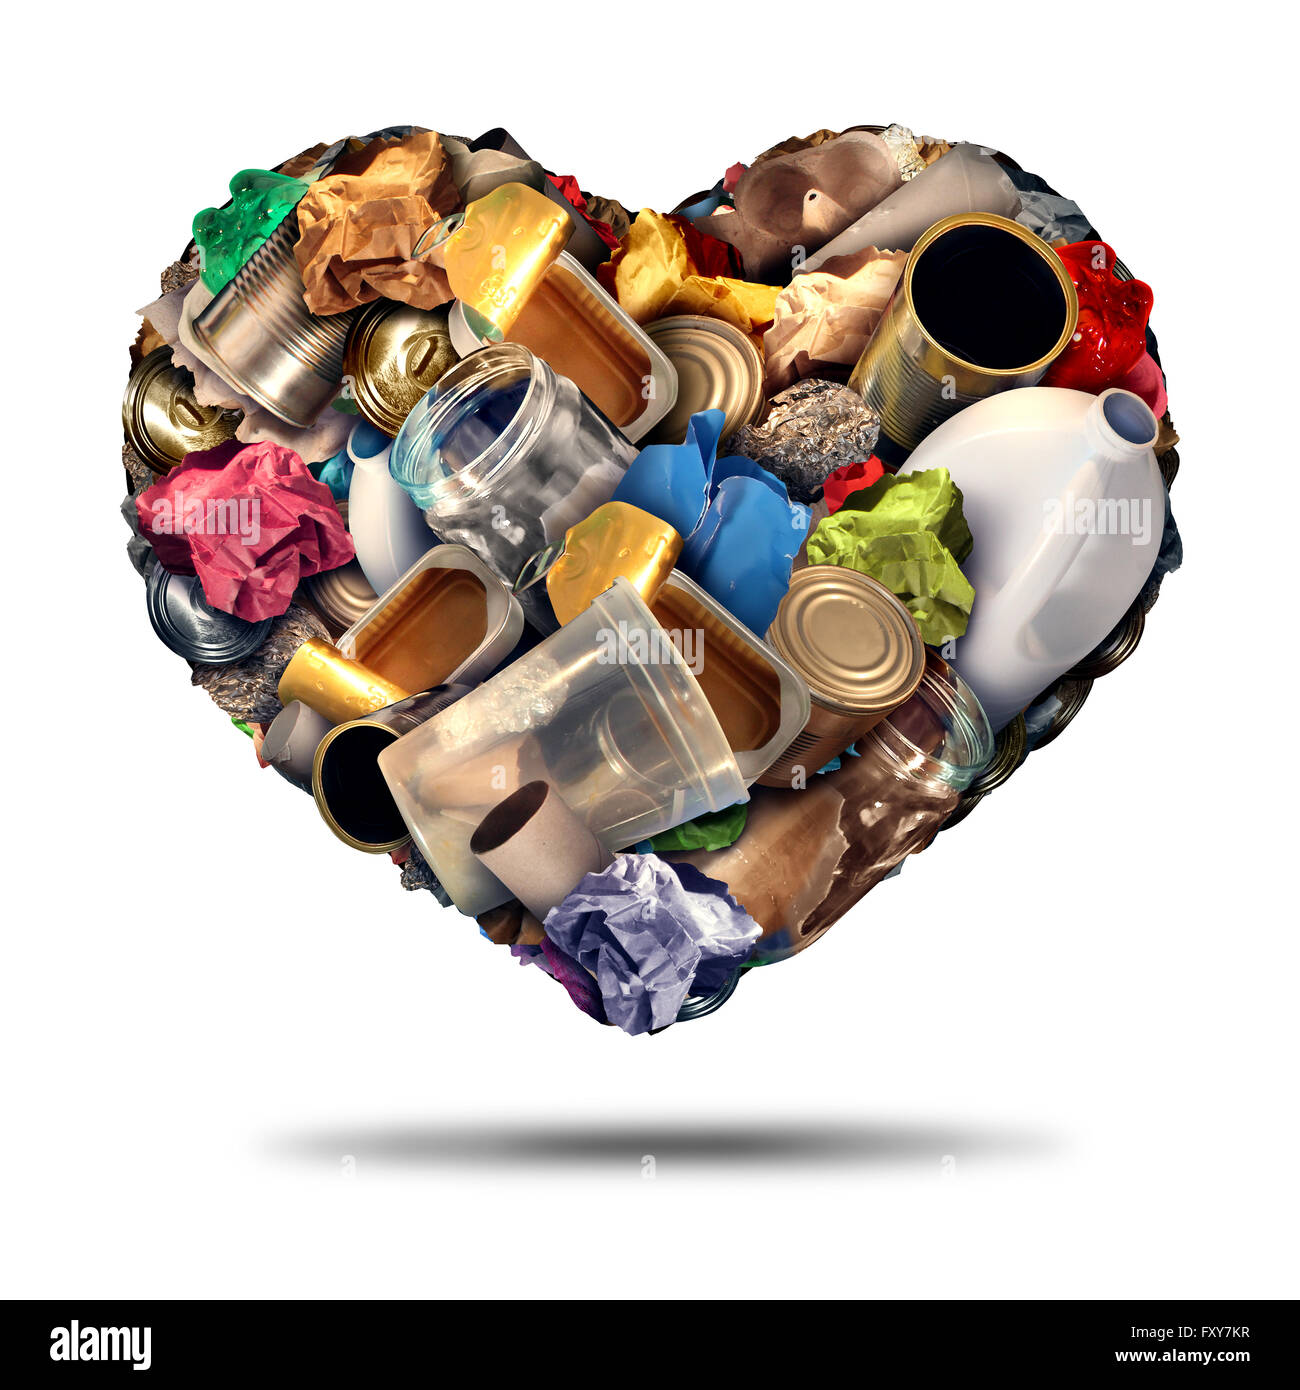 Recycle heart recycling symbol and reuse of scrap metal plastic and paper concept as an illustration on a white - Stock Image